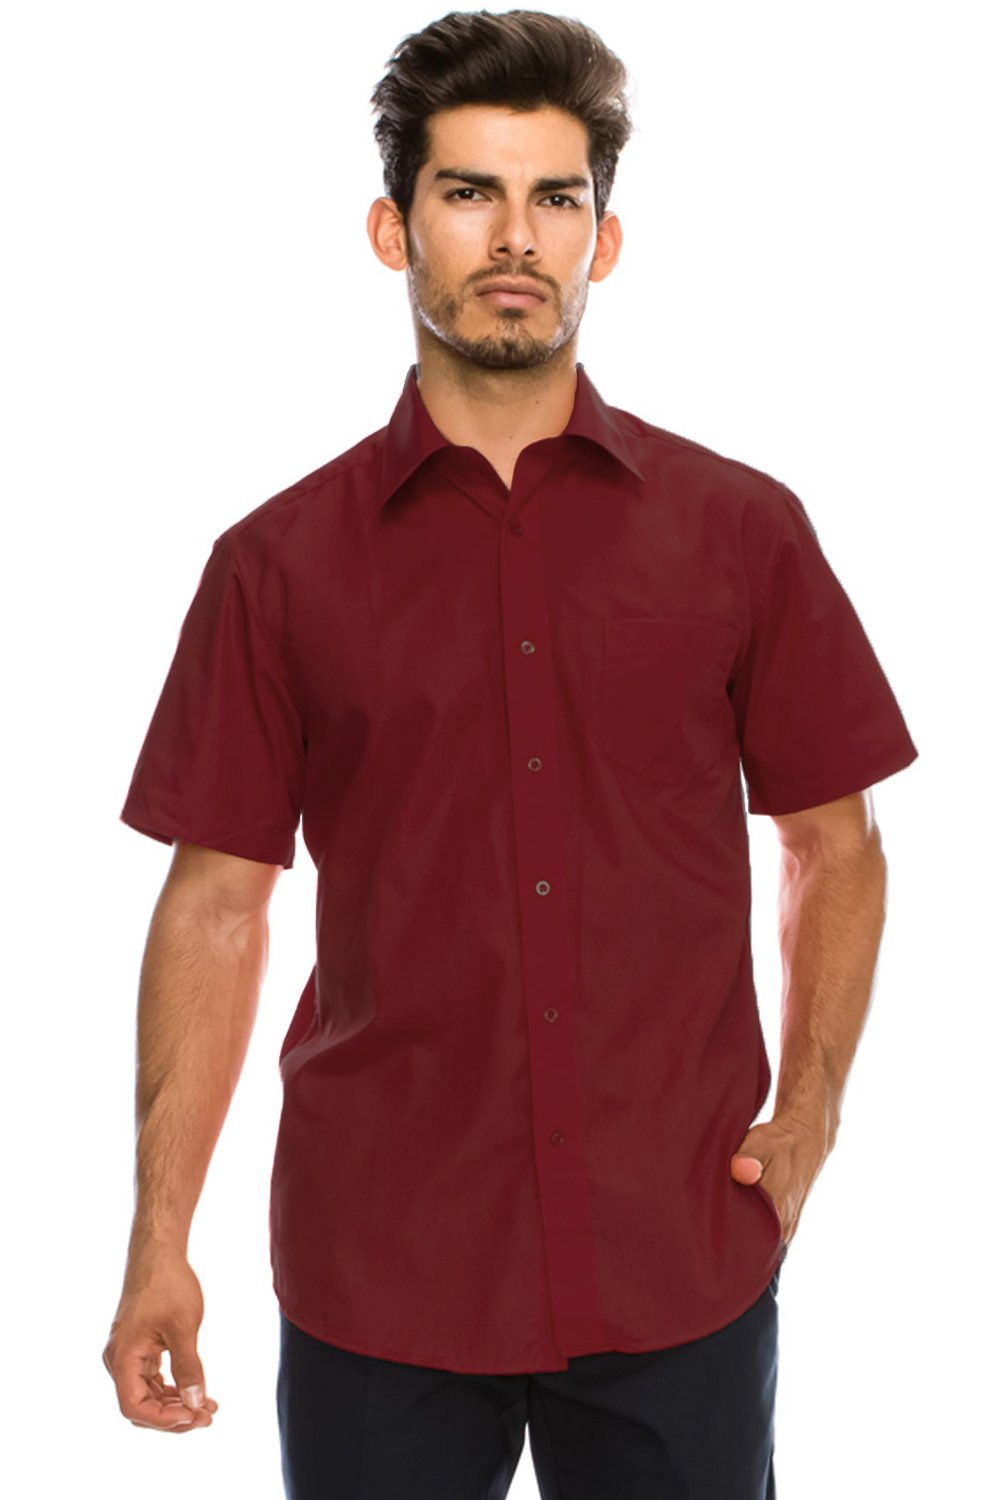 JC DISTRO Men's Regular-Fit Solid Color Short Sleeve Dress Shirt, Burgundy Shirts (3XL)